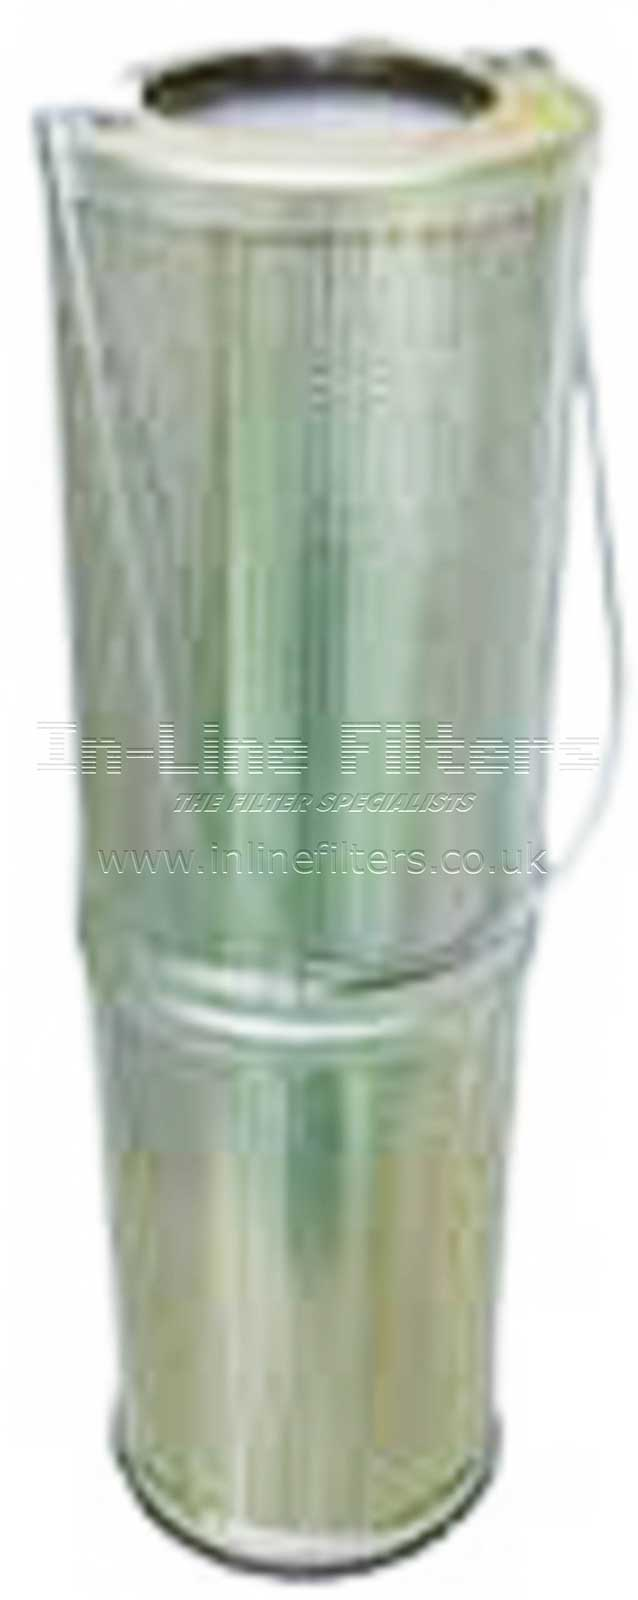 FFG-HF35346 FILTER-Hydraulic(Brand Specific-Fleetguard HF35346) - Click Image to Close